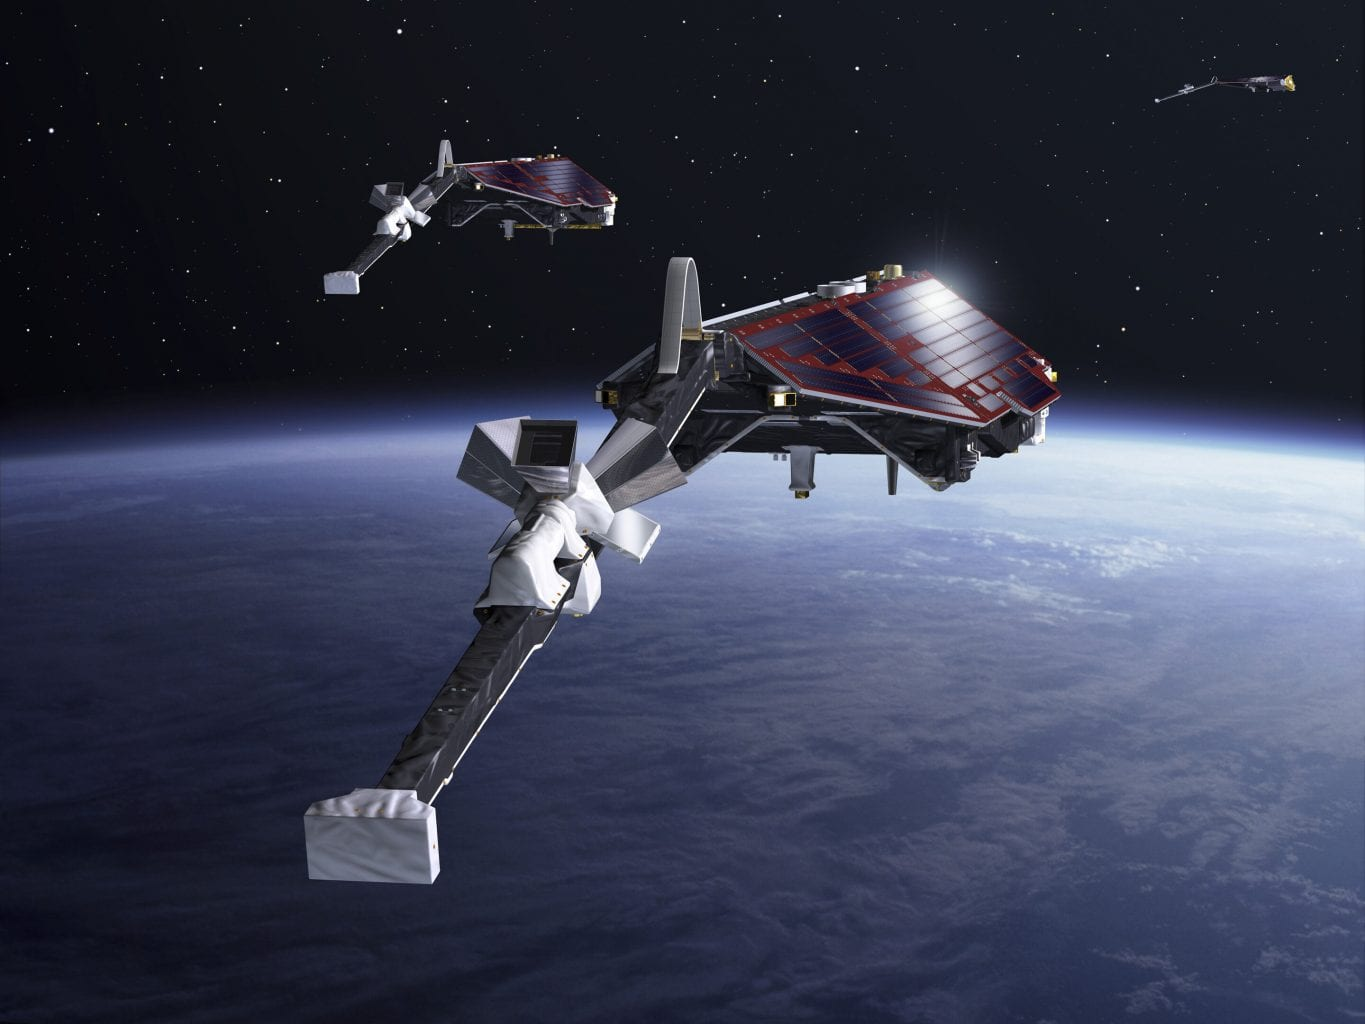 Artist's impression of ESA's Swarm satellites dedicated to studying Earth's magnetic field. Scientists used data from Swarm's observations for the latest study on Antarctica's magnetic links. Credit: ESA-P.Carril, 2013